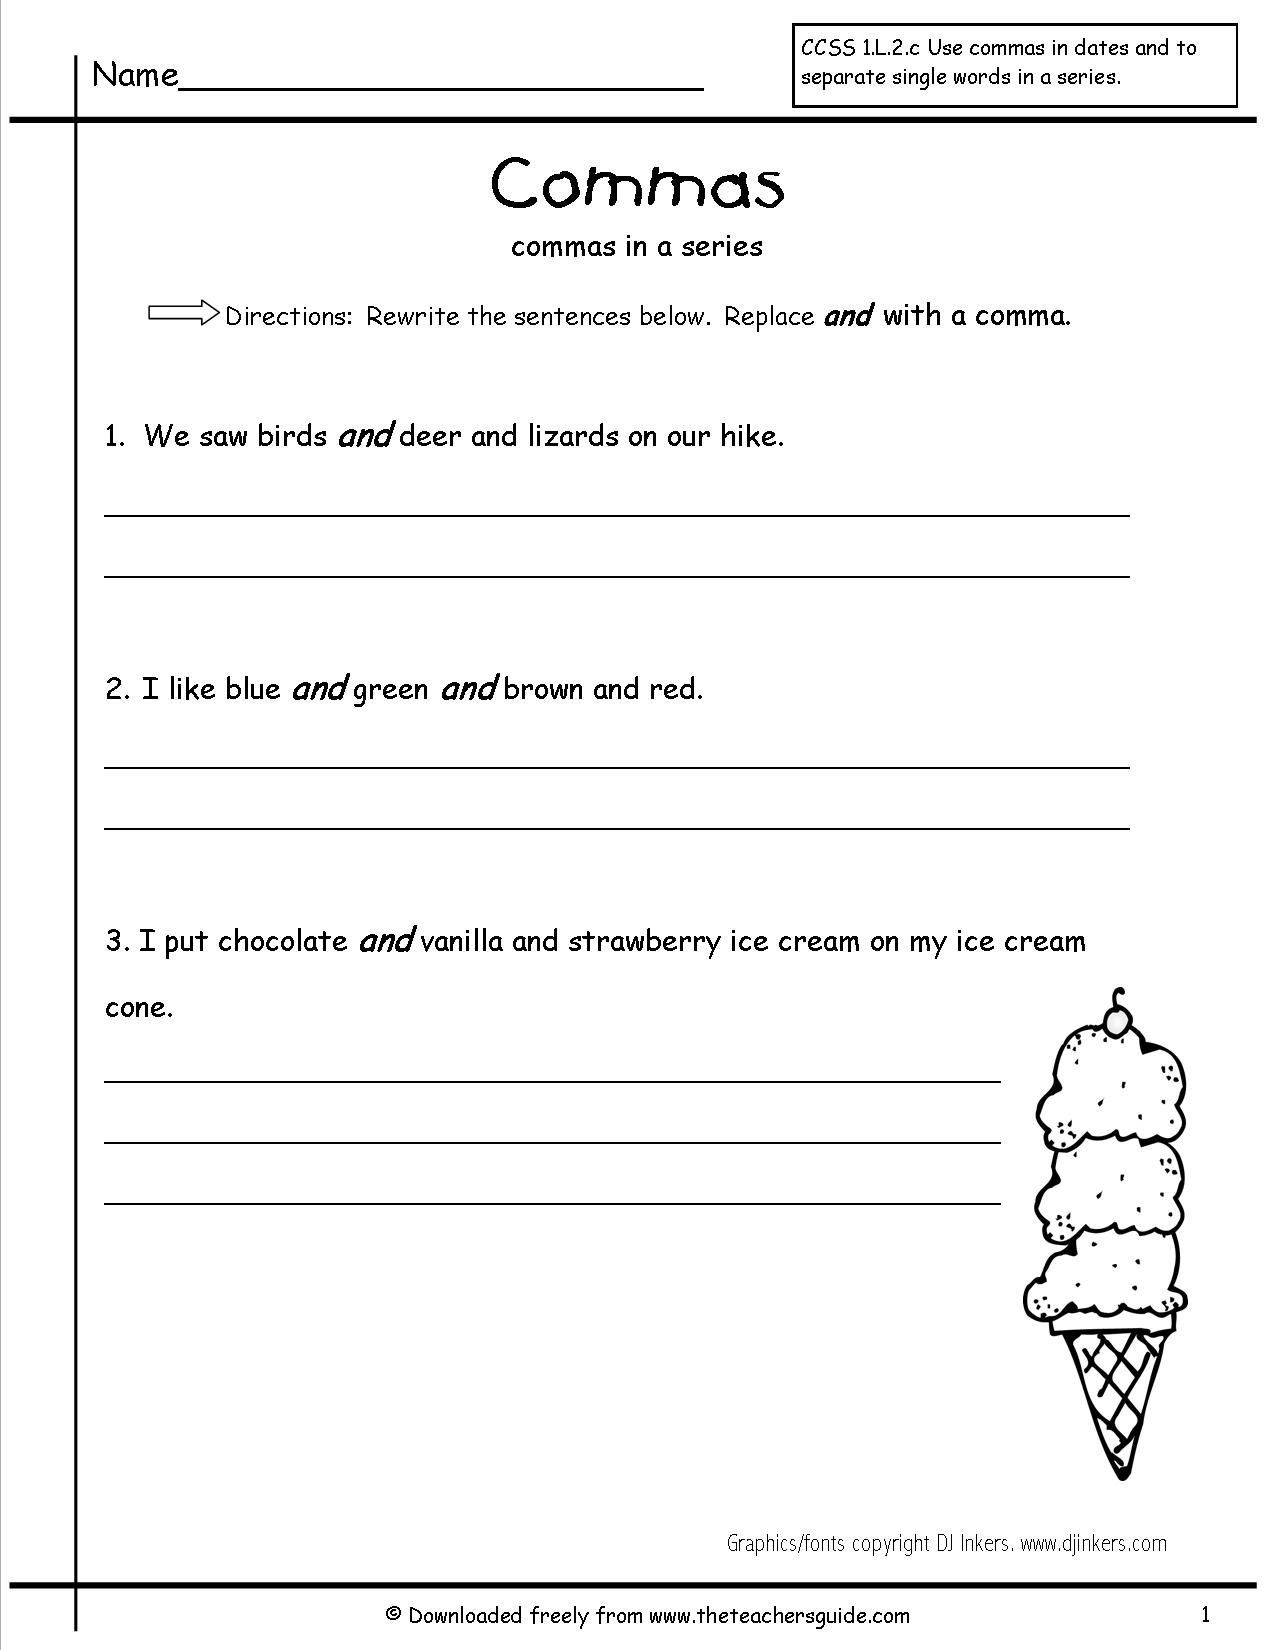 Inflected Endings Worksheets 2nd Grade Mas In A Series Worksheet Journeys Lesson 20 Dex the